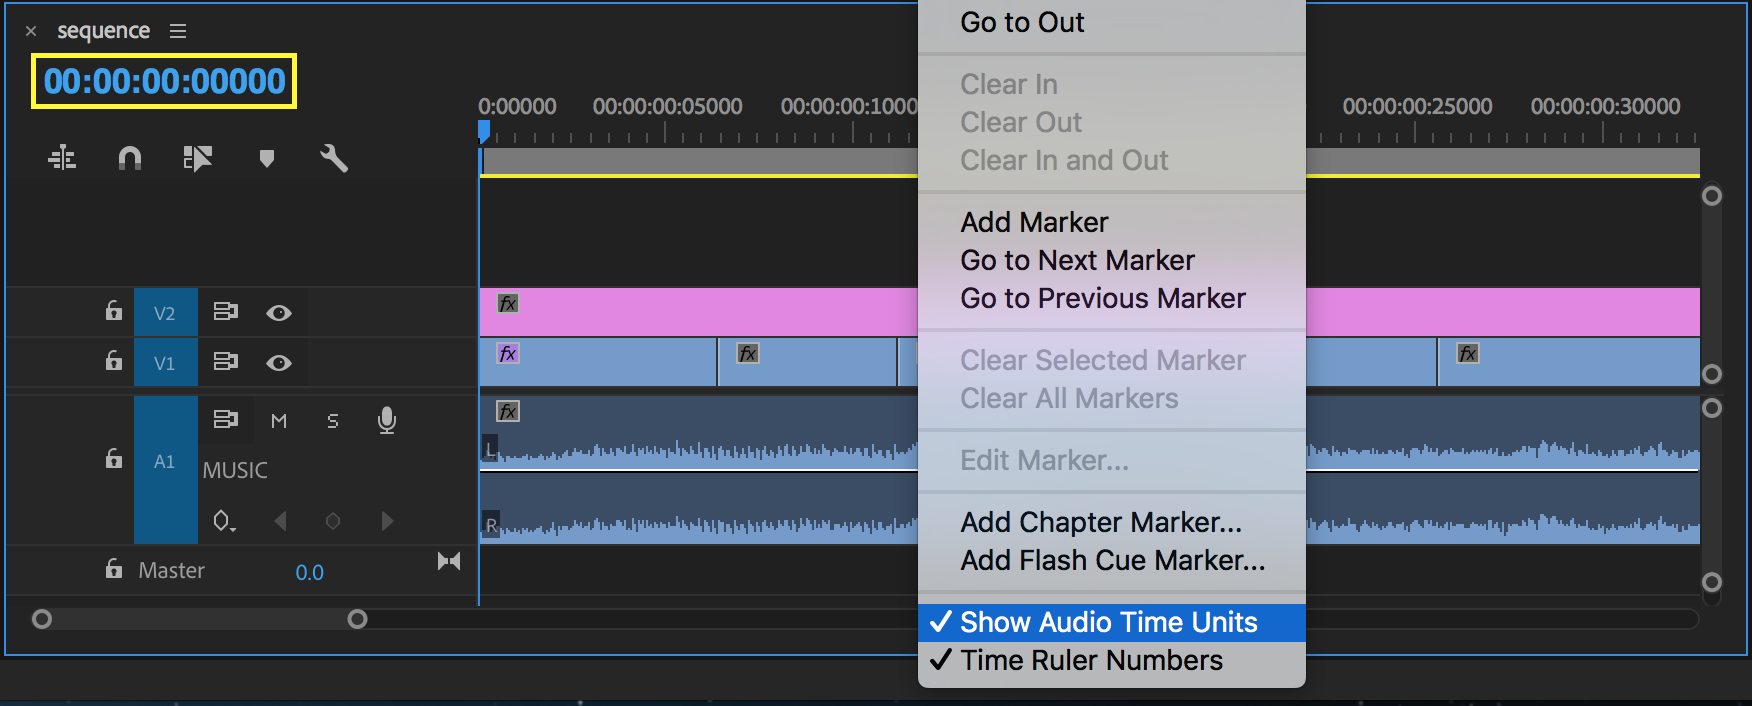 Show Audio Time Units to make sub-frame edits